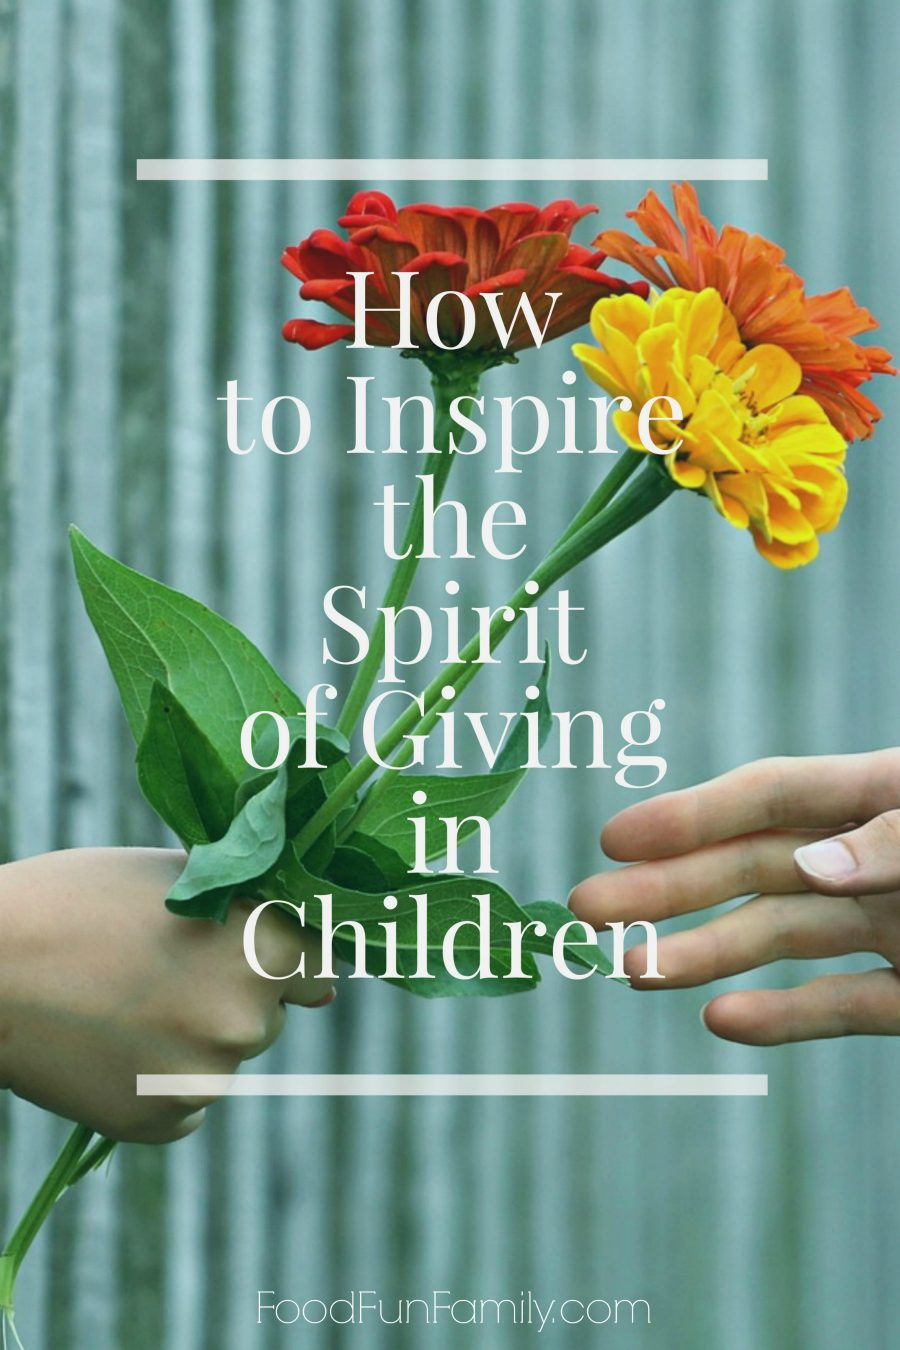 How to inspire the spirit of giving in children - during the holidays and throughout the year